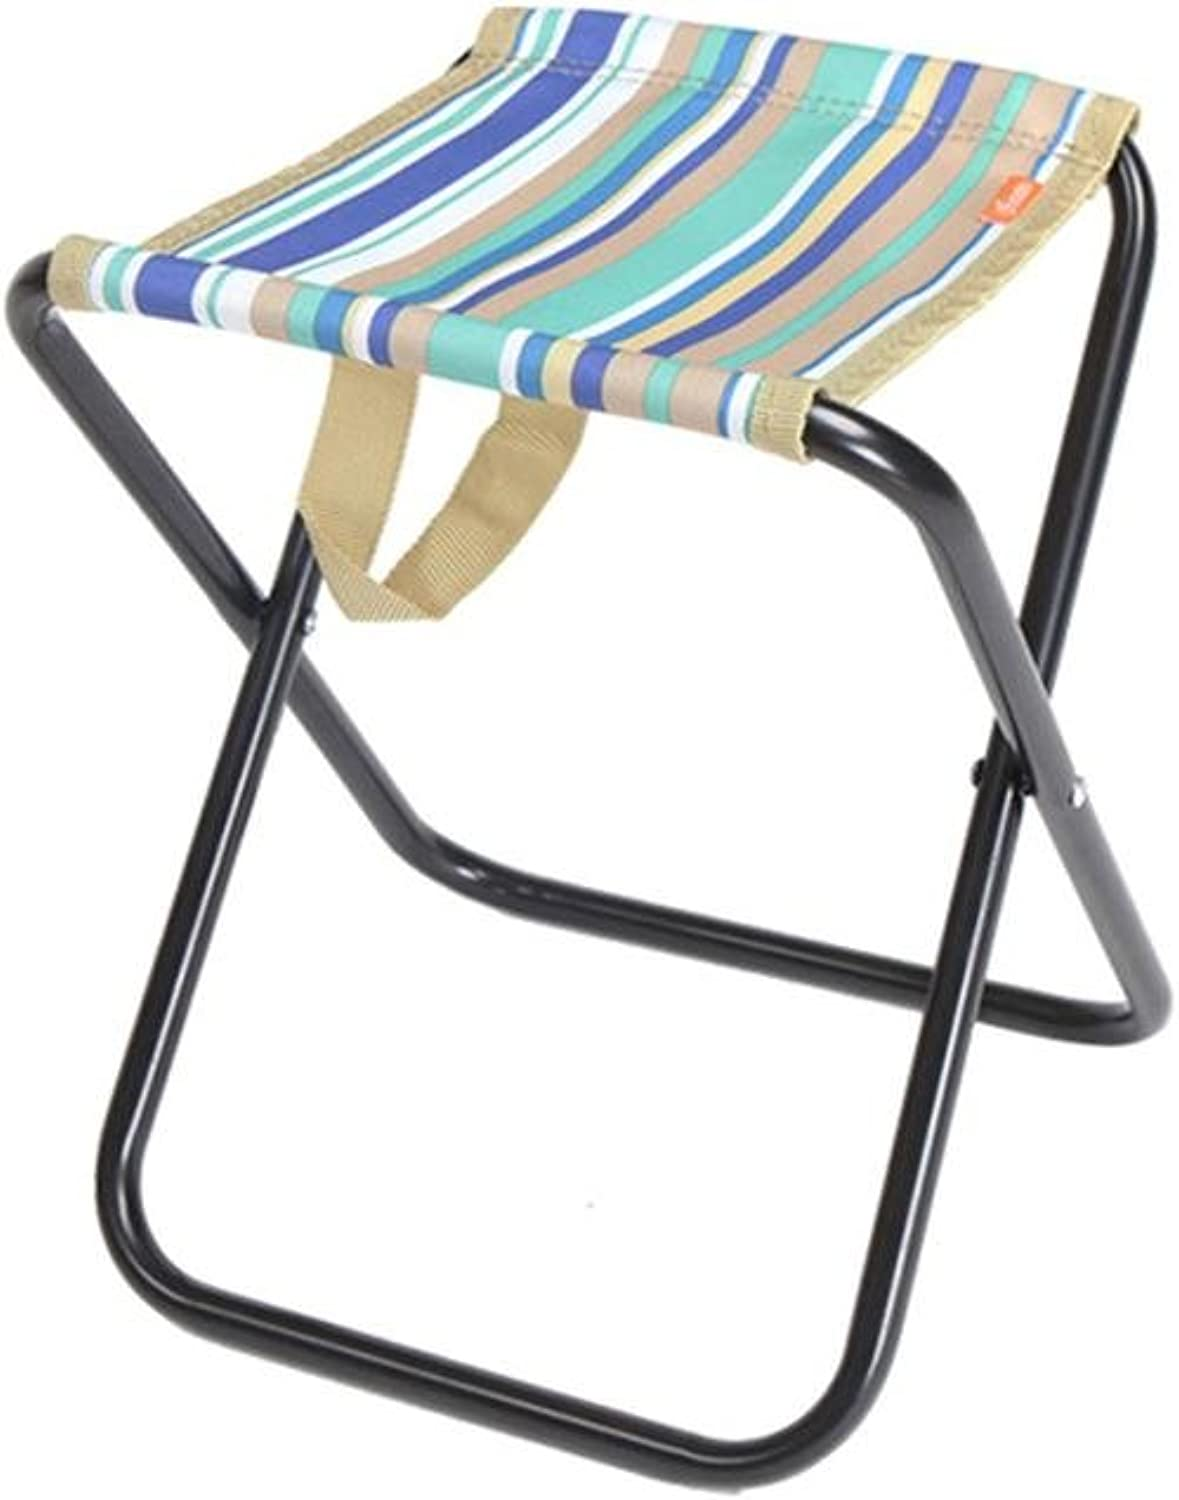 Stools Collapsible, Folding Seat, Ultralight Ergonomics Mini bluee and White Stripes Mazar Fishing Chairs for Camping Painting Hiking Beach Park Portable